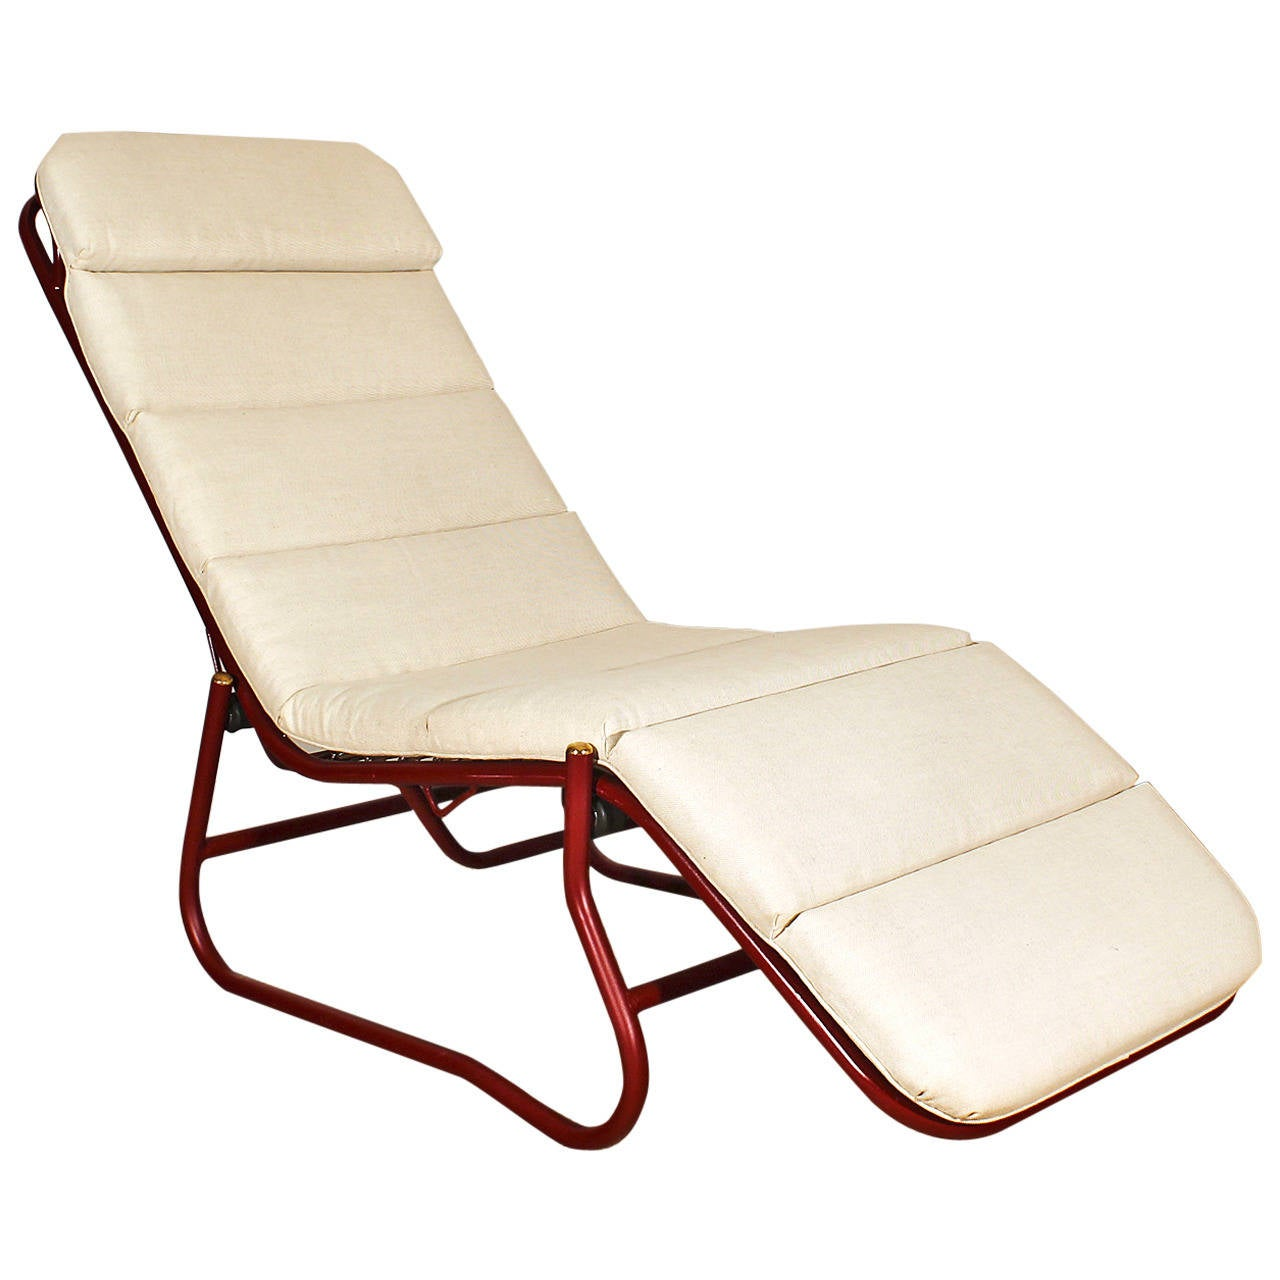 French bauhaus style chaise longue at 1stdibs for Chaise longue barcelona